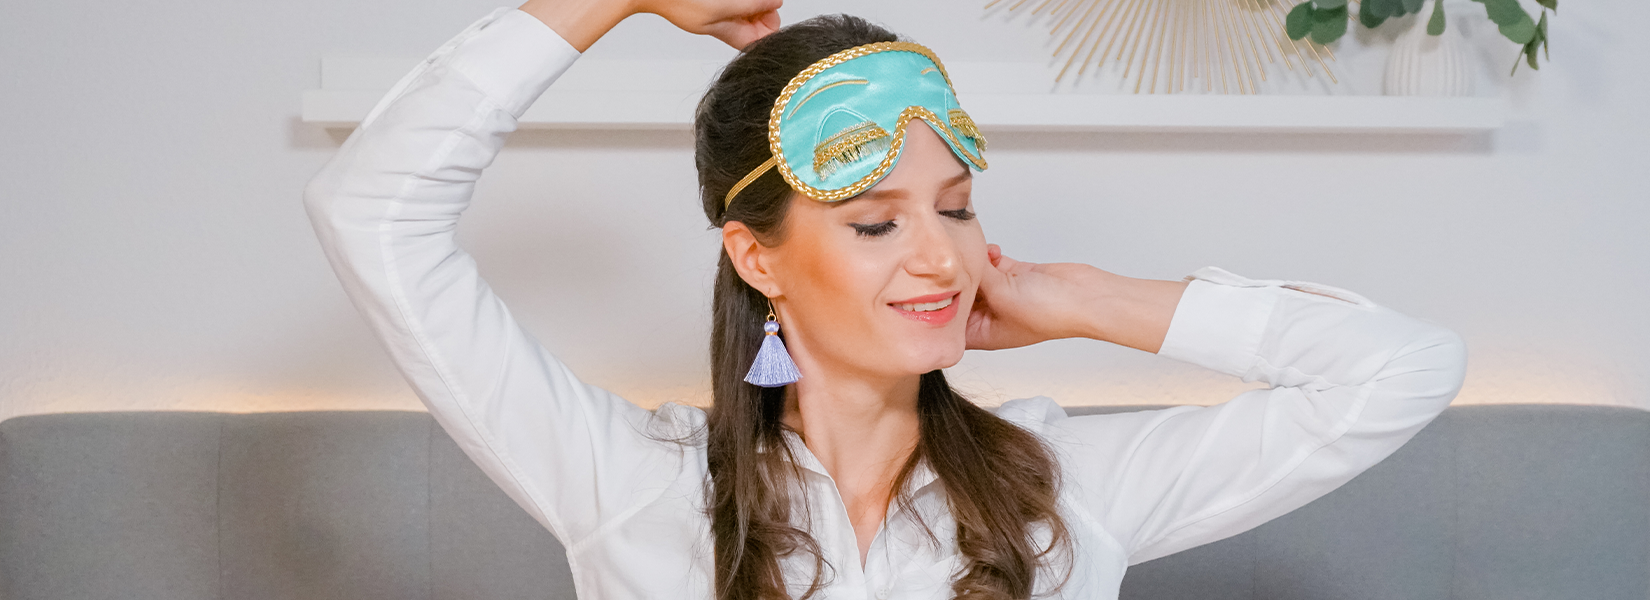 Stay-At-Home Halloween: The Holly Golightly Costume